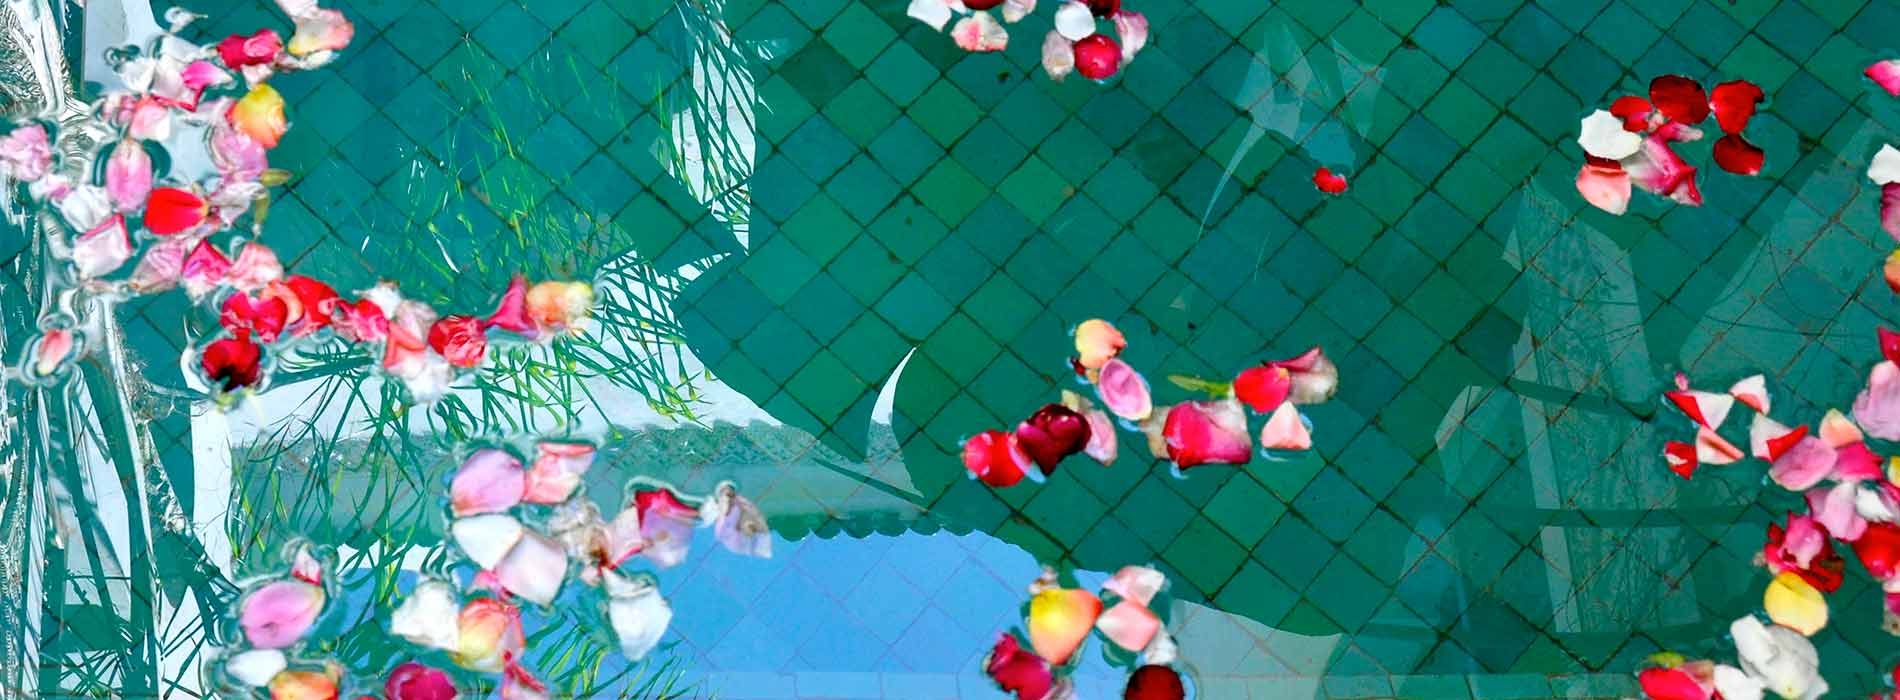 Riad Aguaviva, Marrakech. Rose petals at the pool.